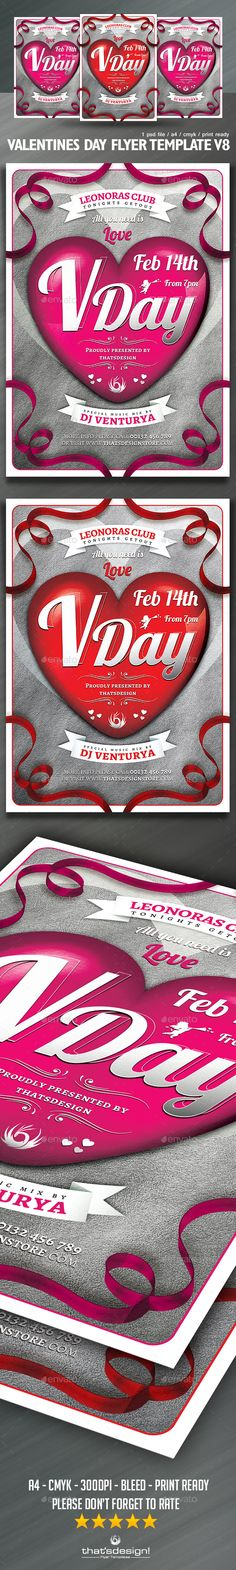 Thanksgiving Day Konnekt Discover more ideas about Flyer - labour day flyer template